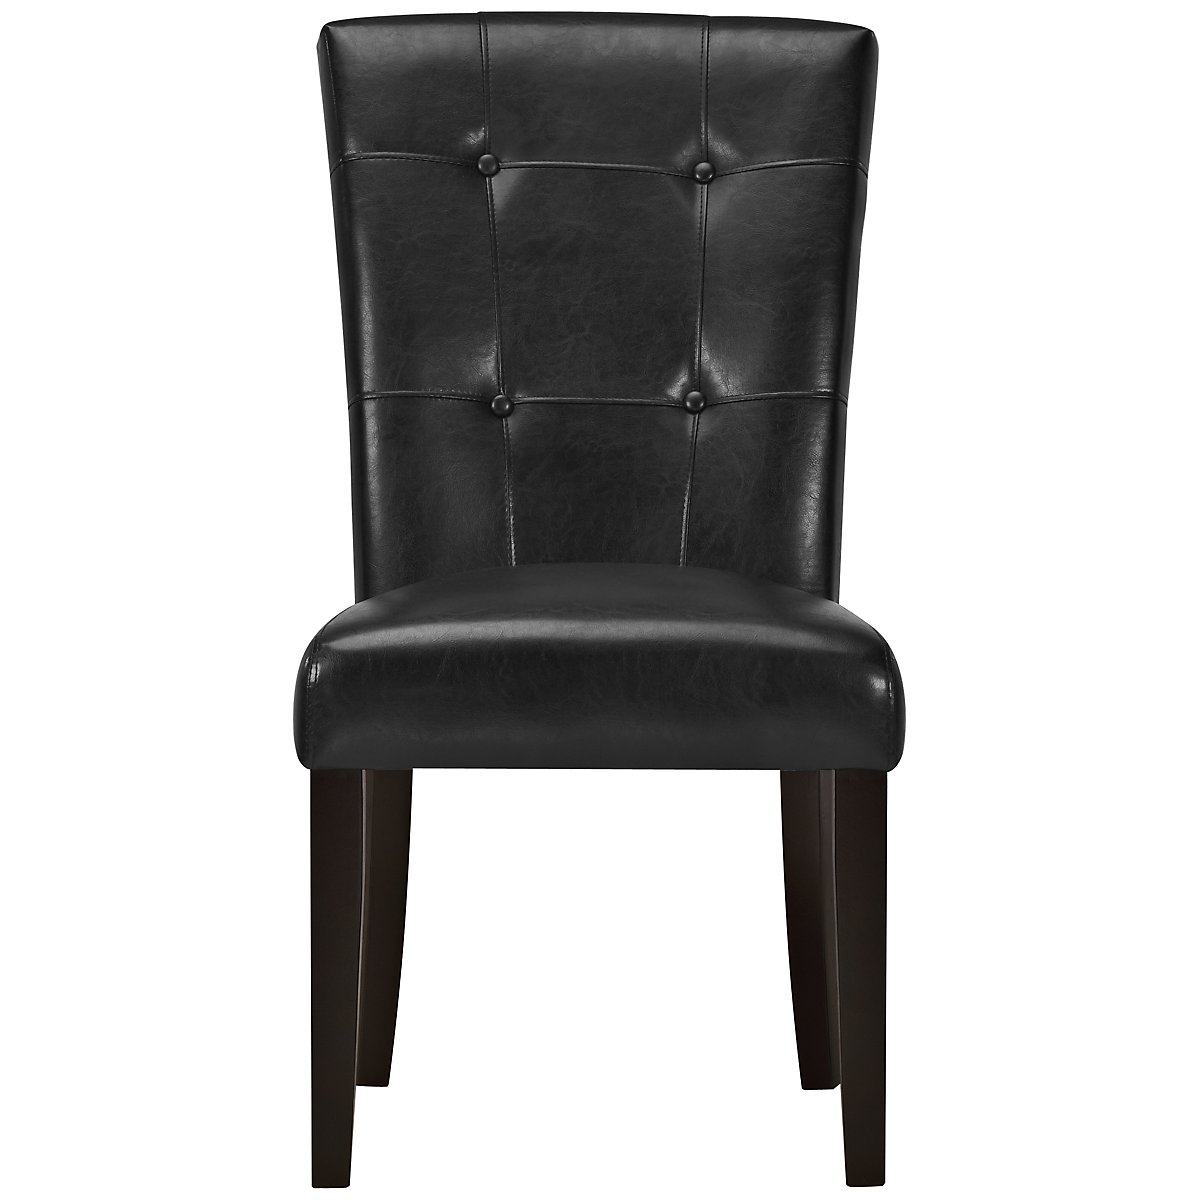 monark black upholstered side chair. Black Bedroom Furniture Sets. Home Design Ideas